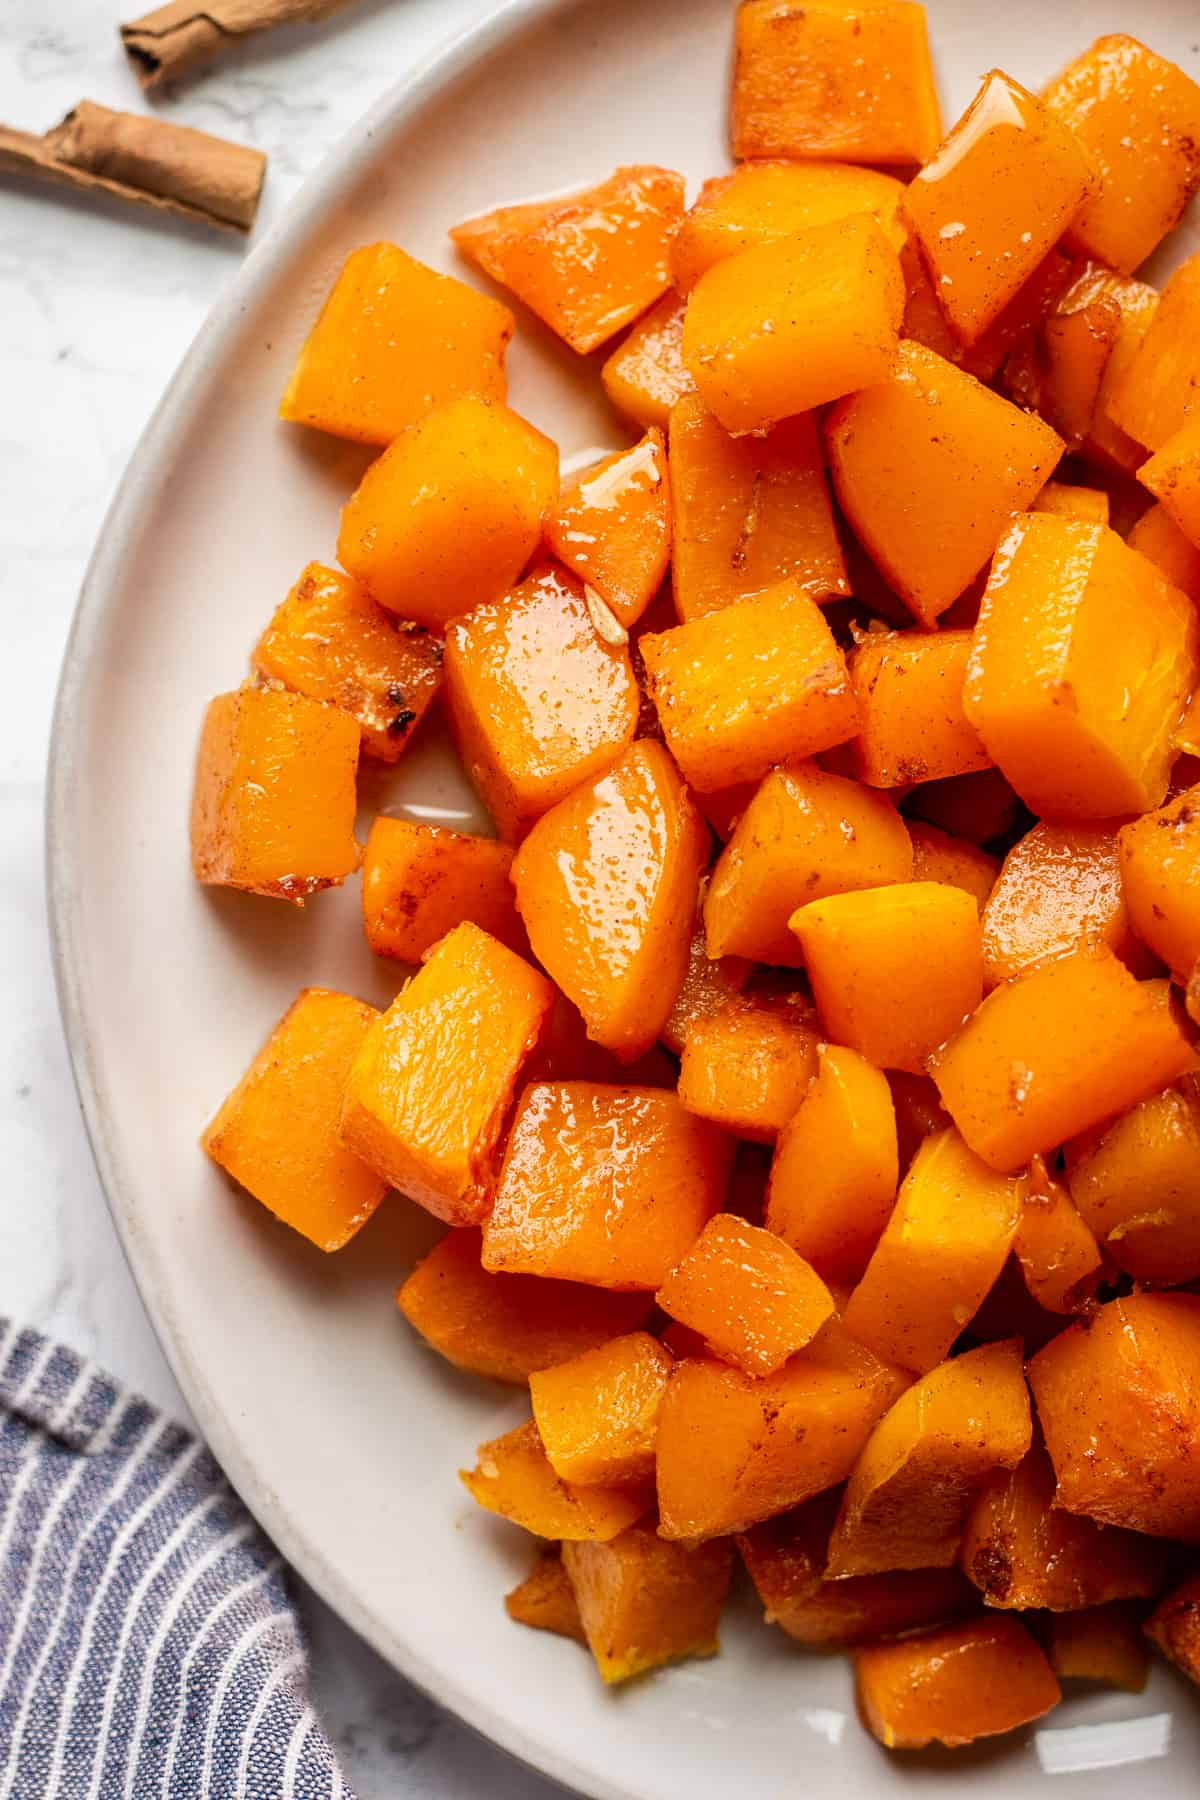 Candied Butternut Squash on a white plate against white background